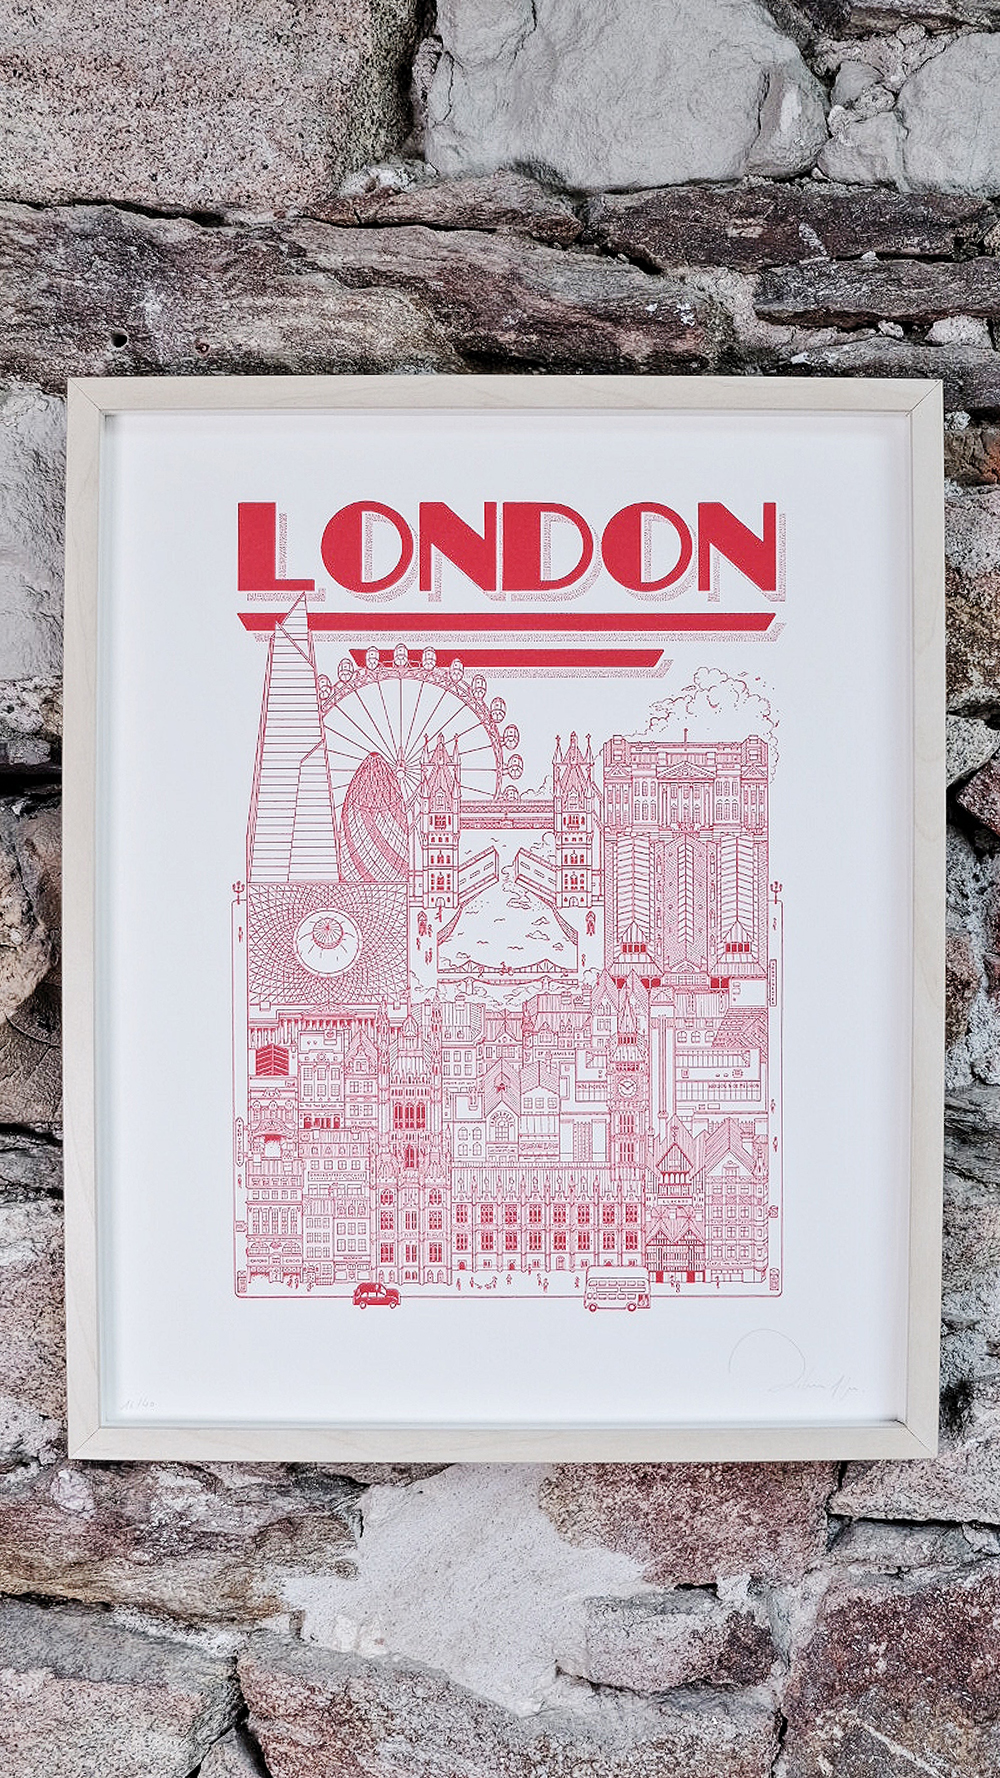 SERIE LIMITEE SHOP Docteur Paper LETTERPRESS AFFICHE ILLUSTRATION LONDON